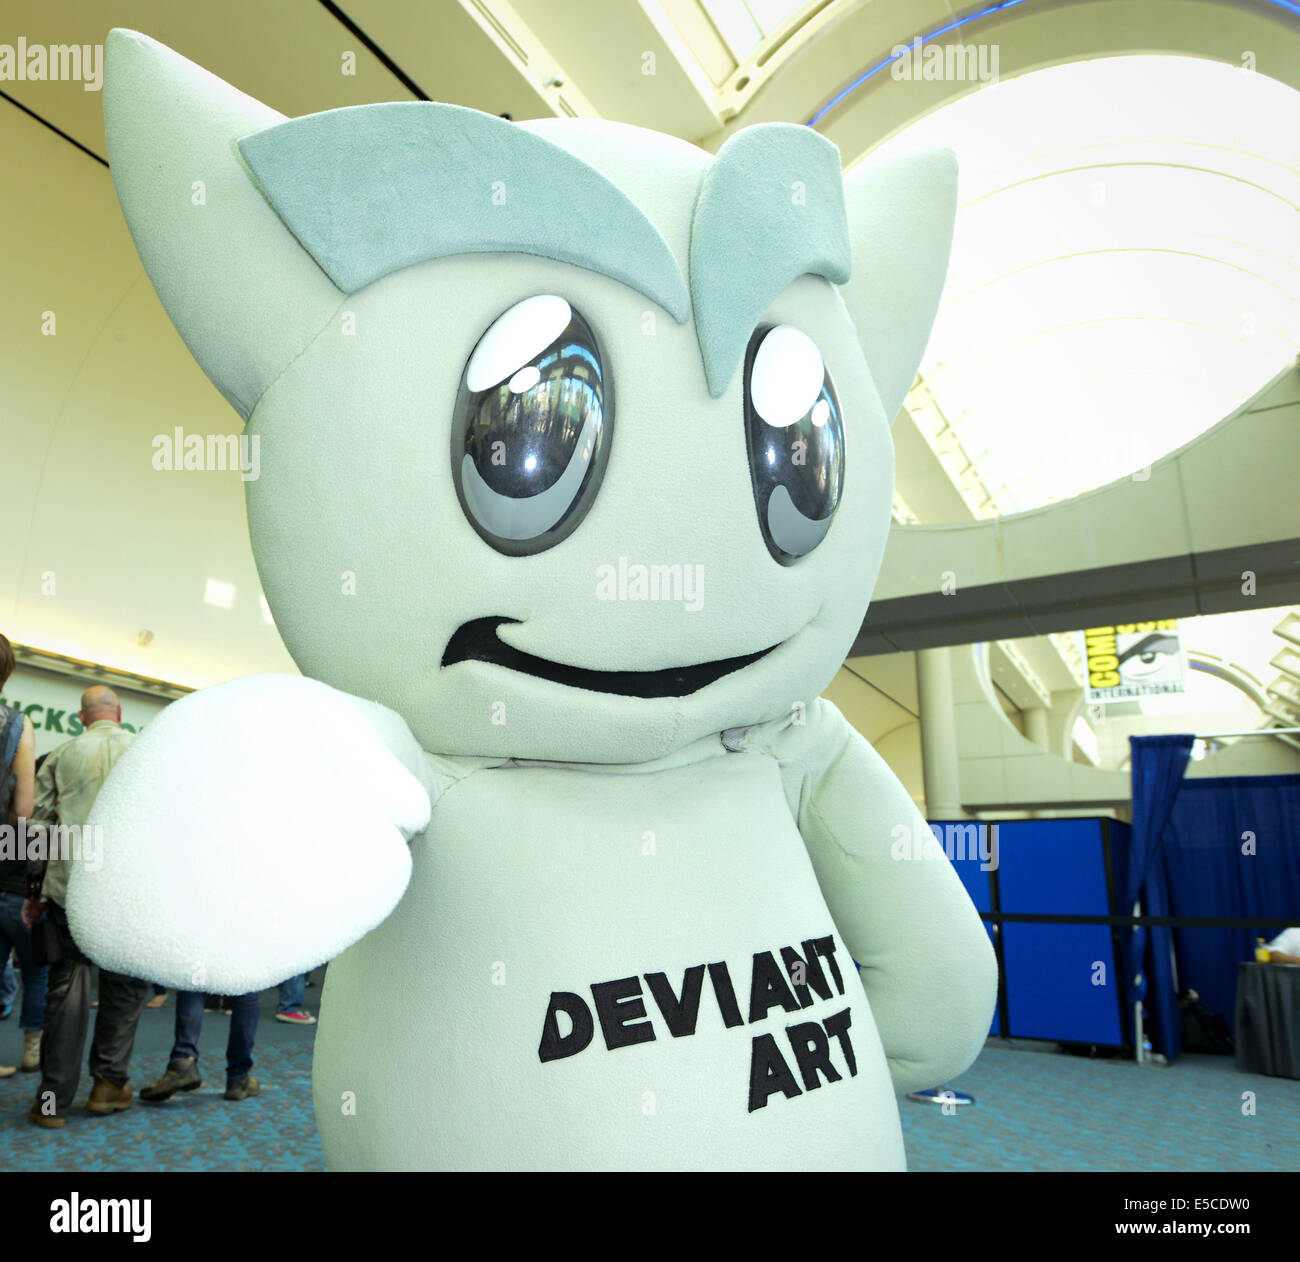 San Diego, California, USA. 26th July, 2014. A cute larger than life Deviant Art animated character in full covered - Stock Image